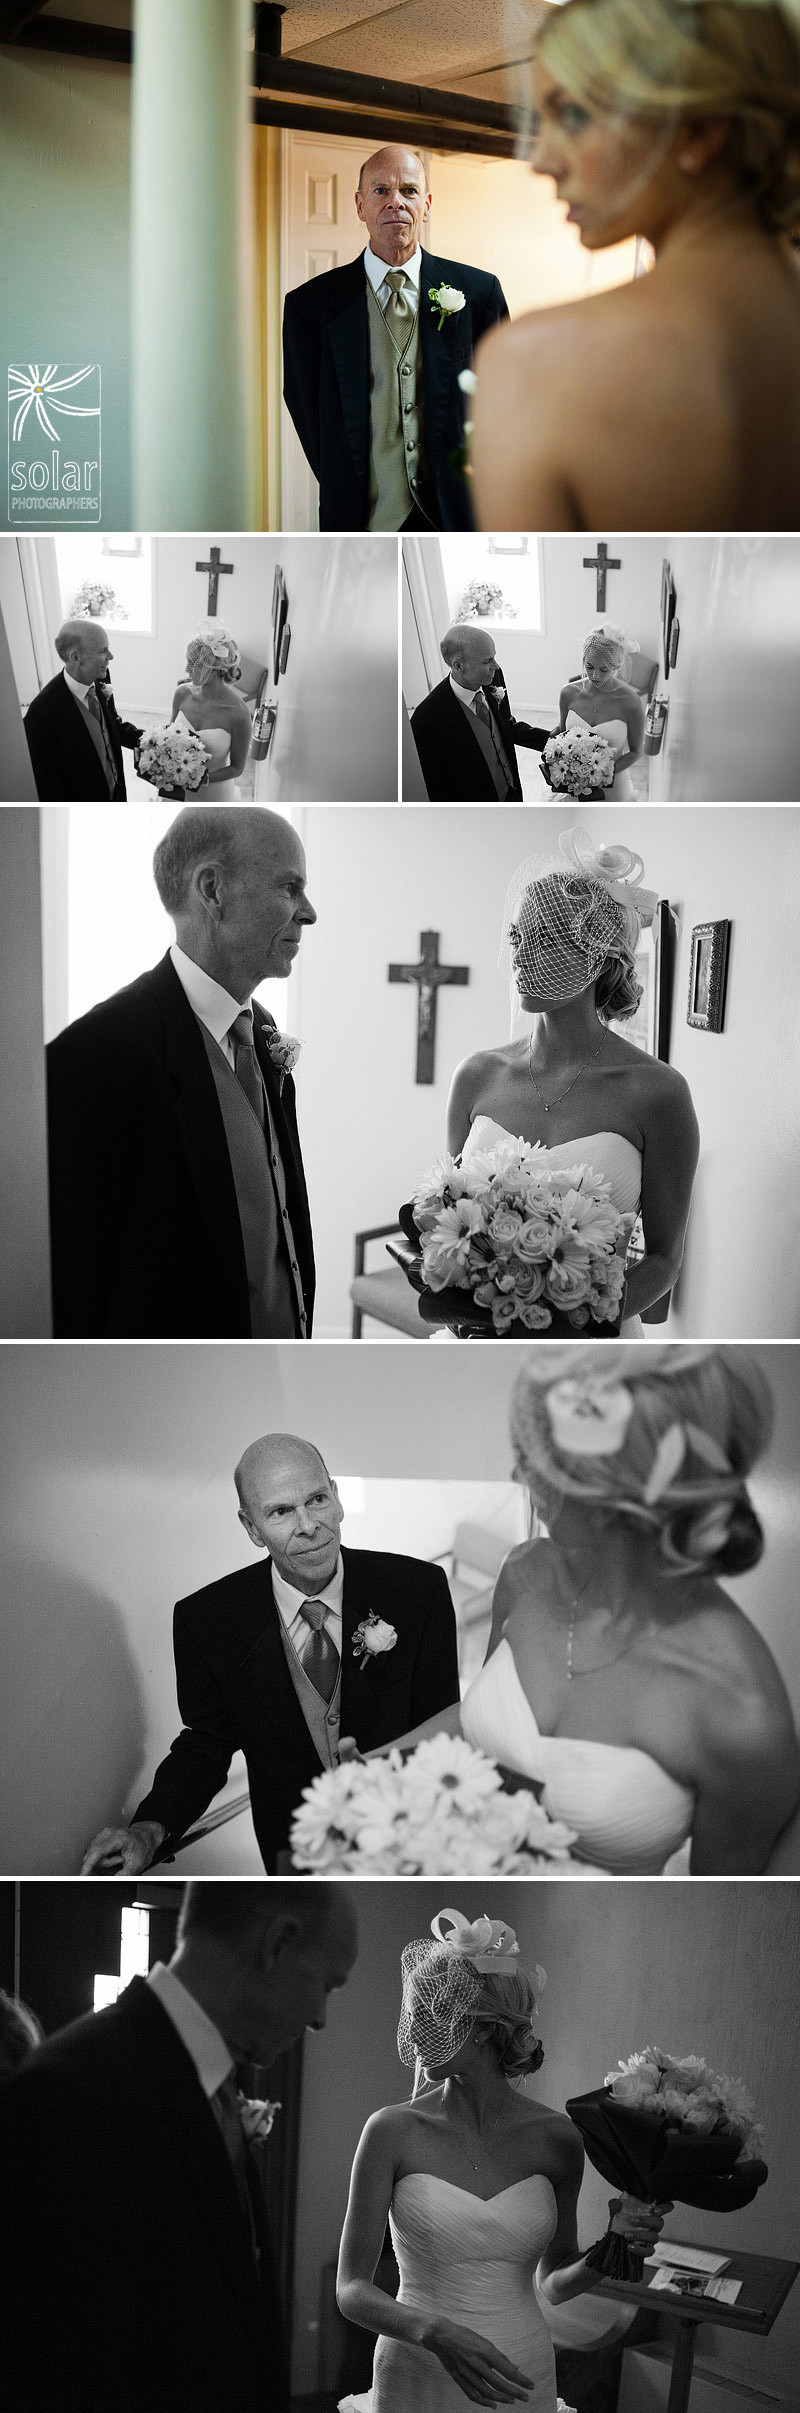 Beautiful father daughter moments before her wedding.